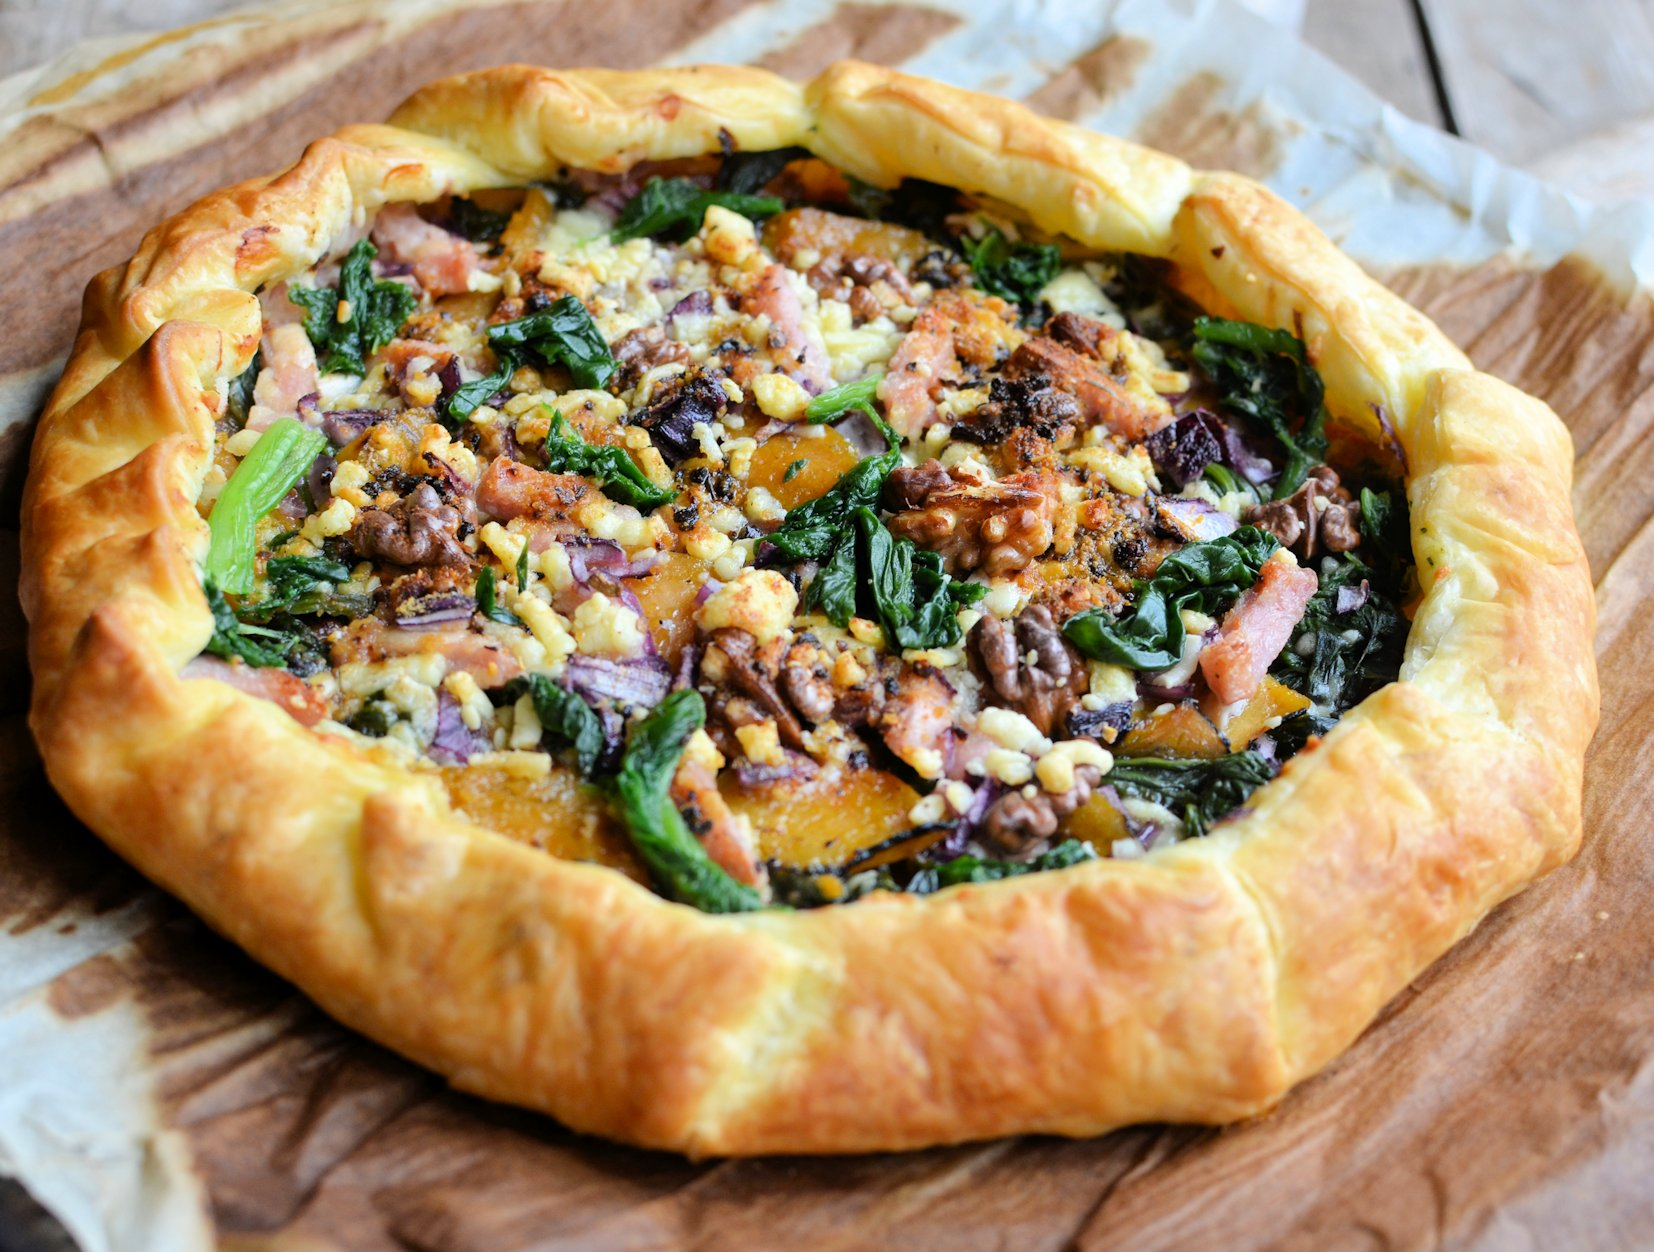 ... kale salad kale salad kale and onion pie recipes kale and onion pie